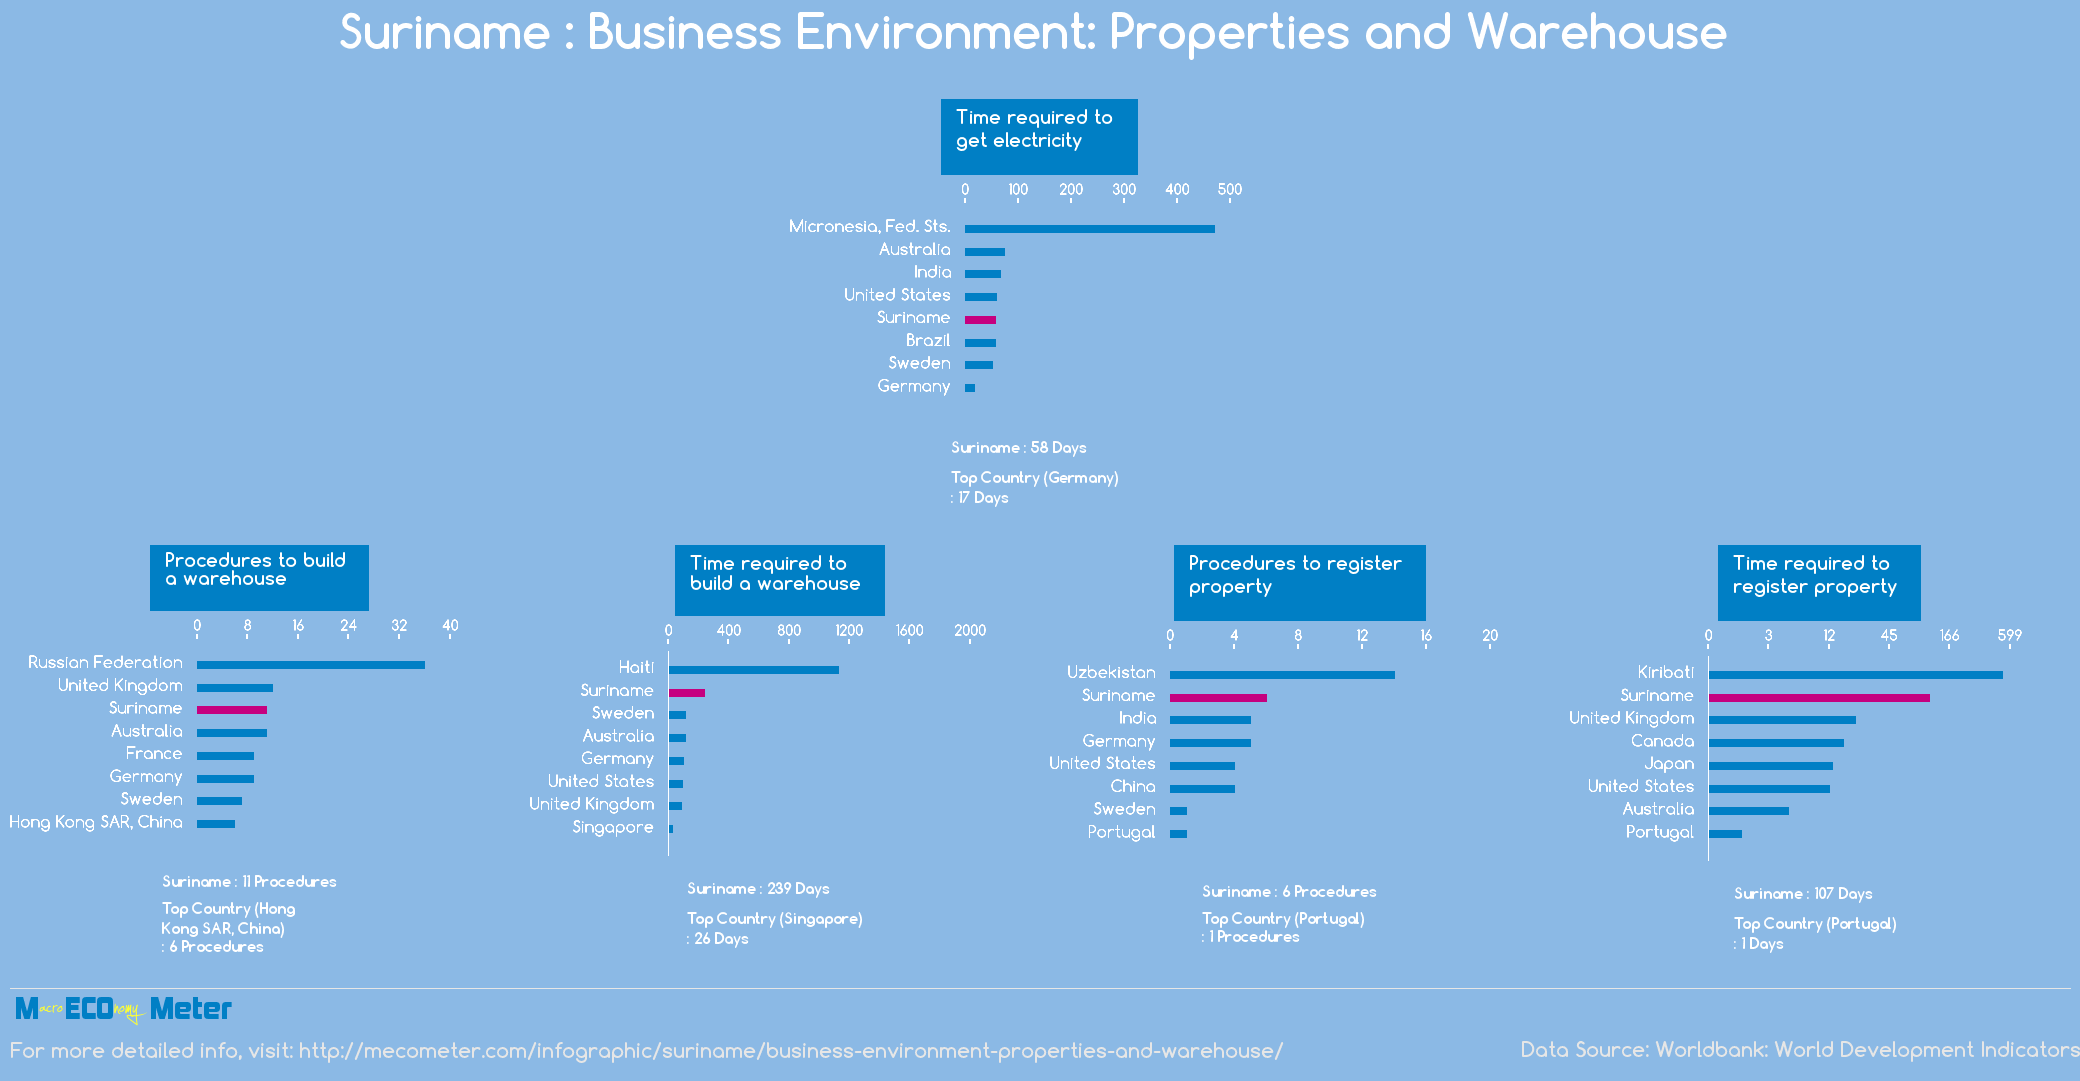 Suriname : Business Environment: Properties and Warehouse